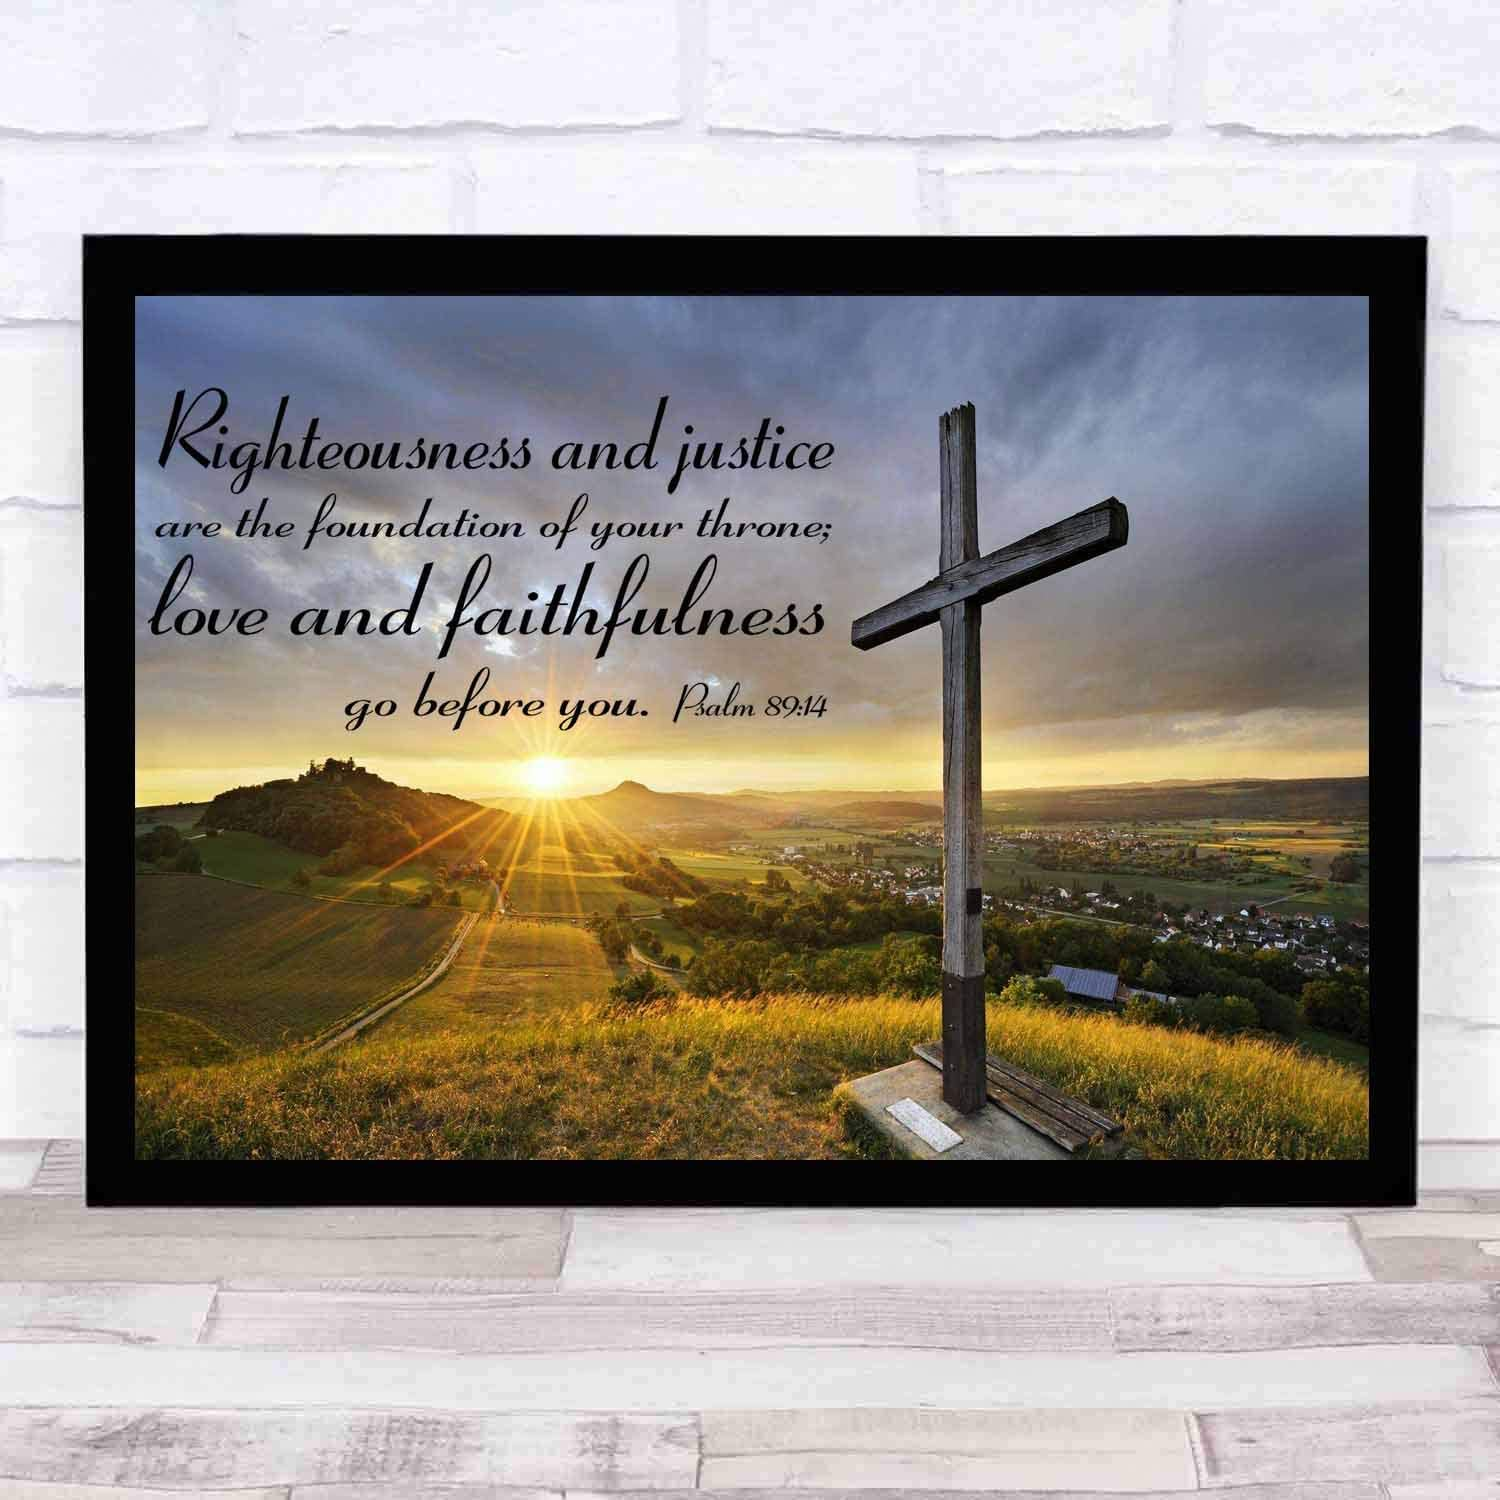 Amazon.com: cupGTR :) Psalm 8914, Righteousness and Justice are The  Foundation of Your Throne Love and Faithfulness Go Before You.Religious  Home Decor Bible Scripture Art 12x10: Posters & Prints